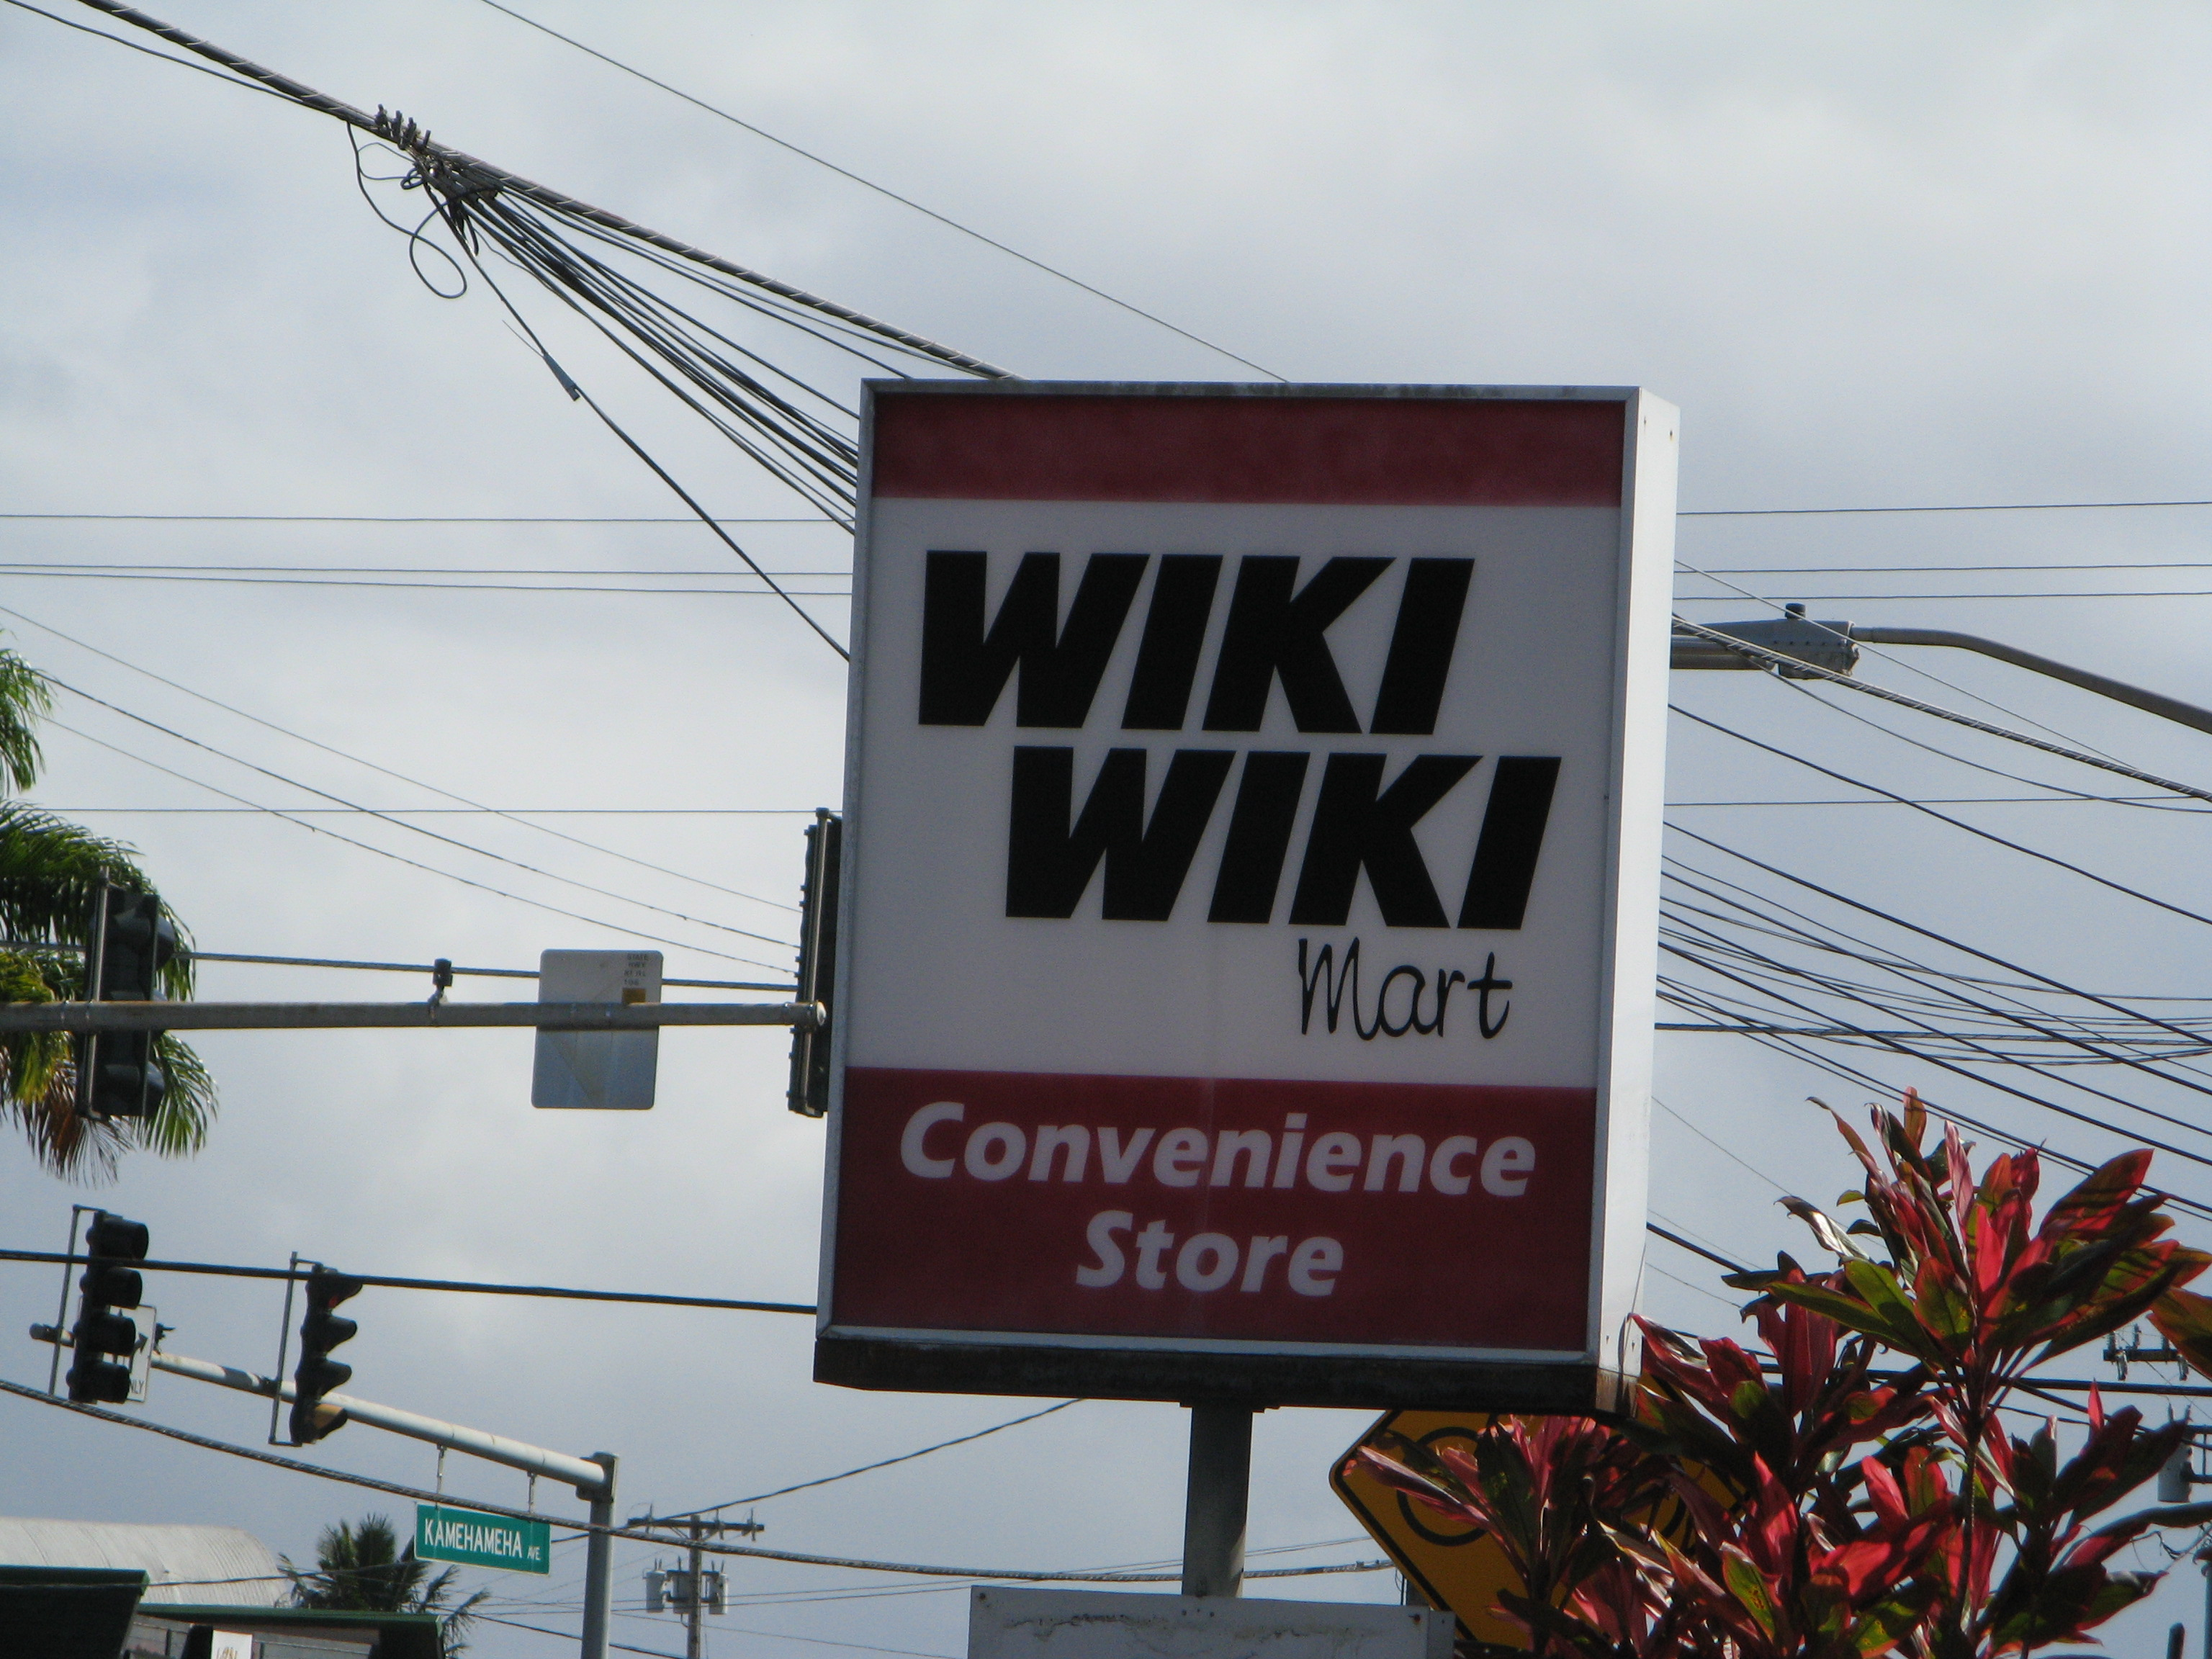 A grocery sign showing Wiki Wiki Mart